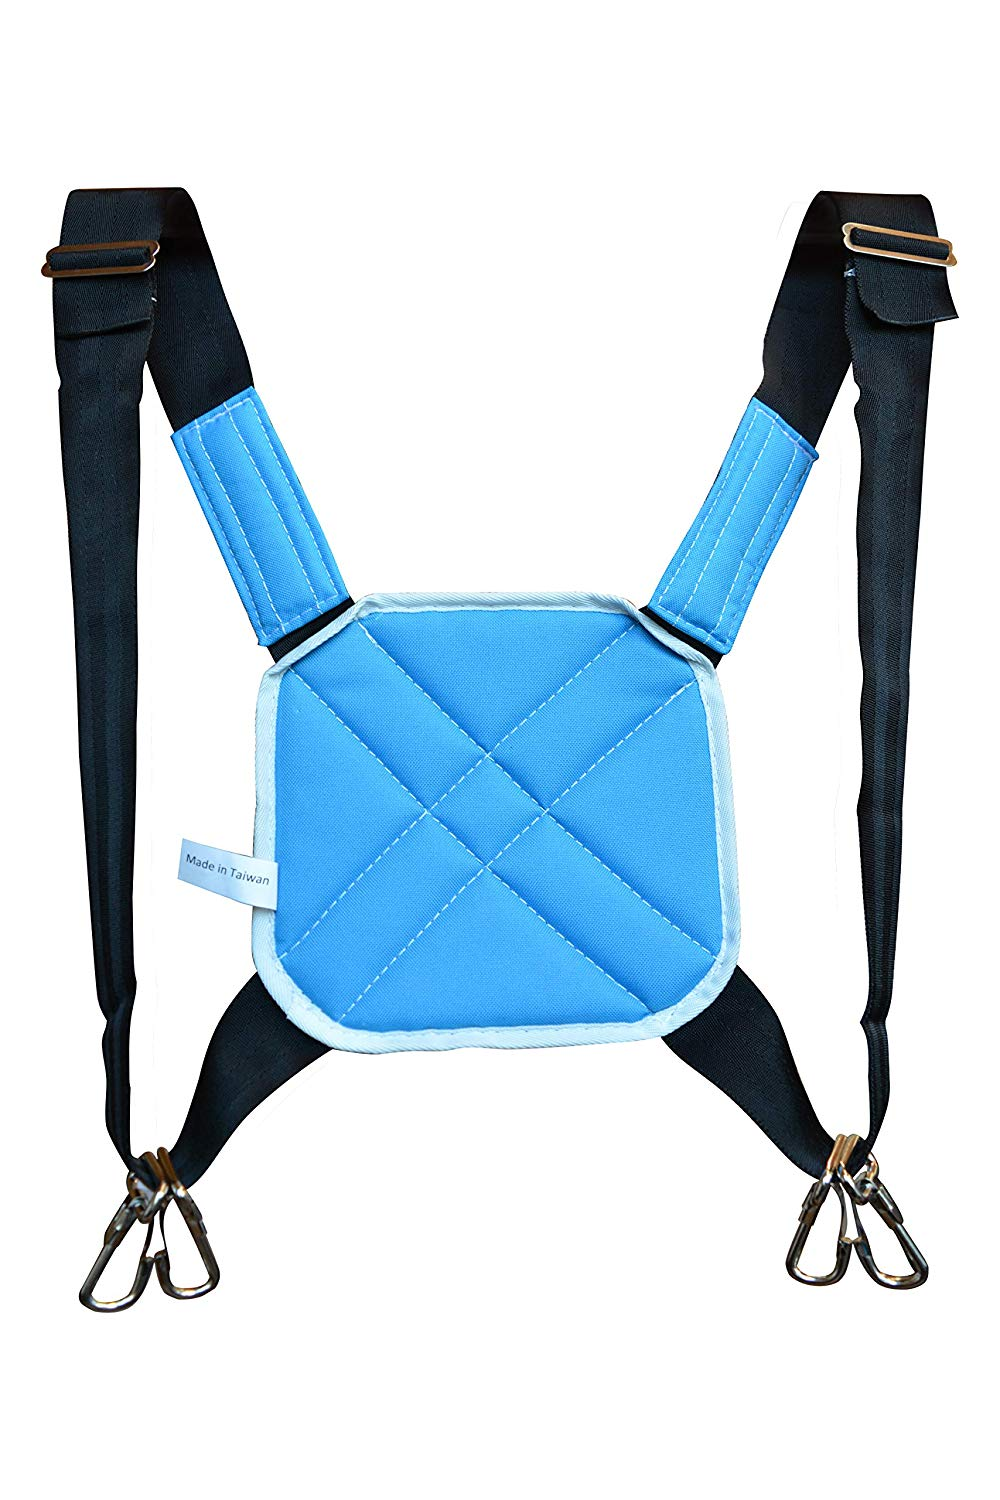 Picking Bucket Harness AG401-Deluxe AgriKon Padded Harness, for Fruit Picking Bucket and Bags